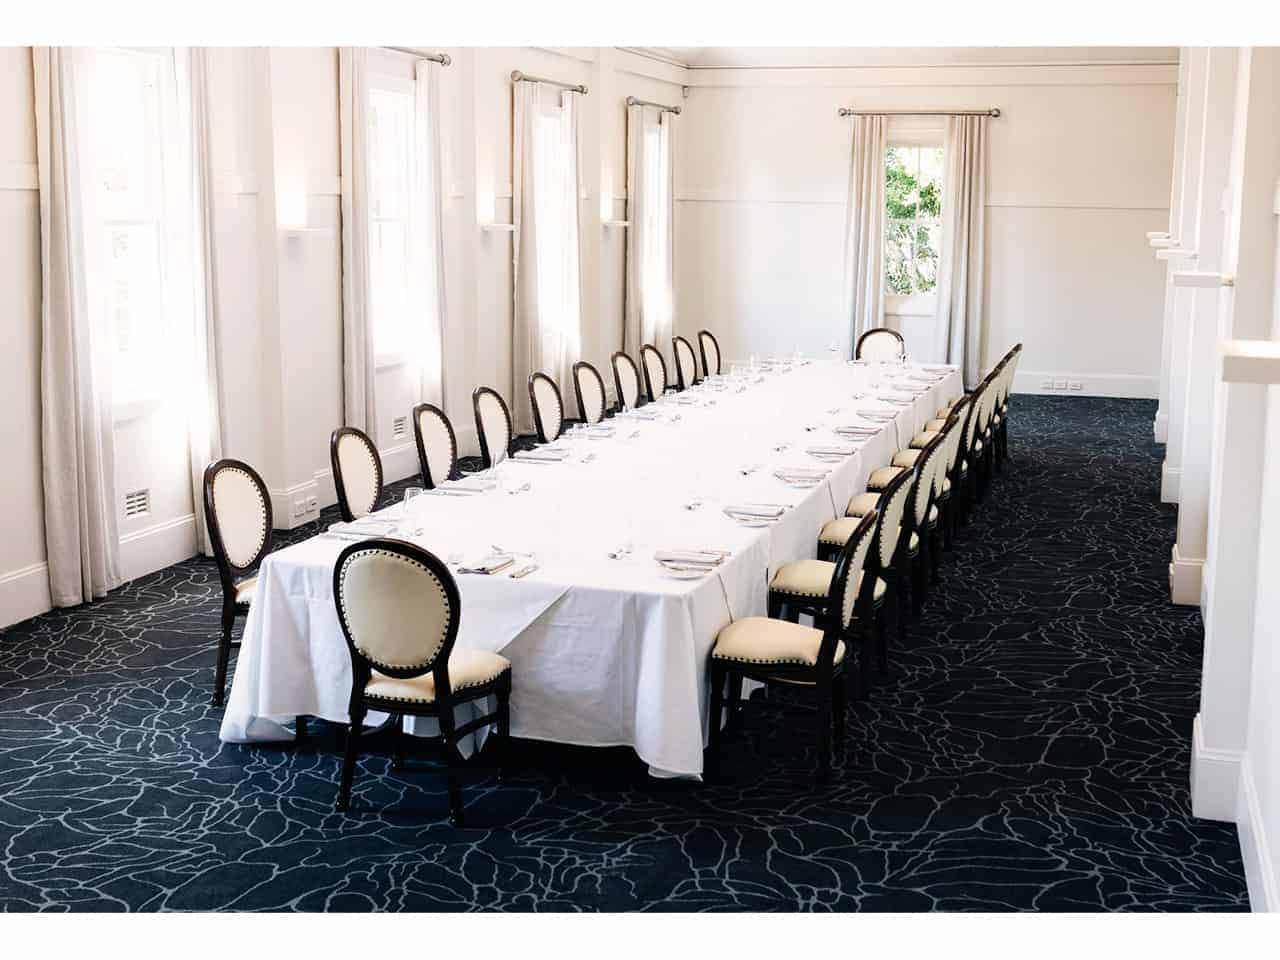 Boardroom style event